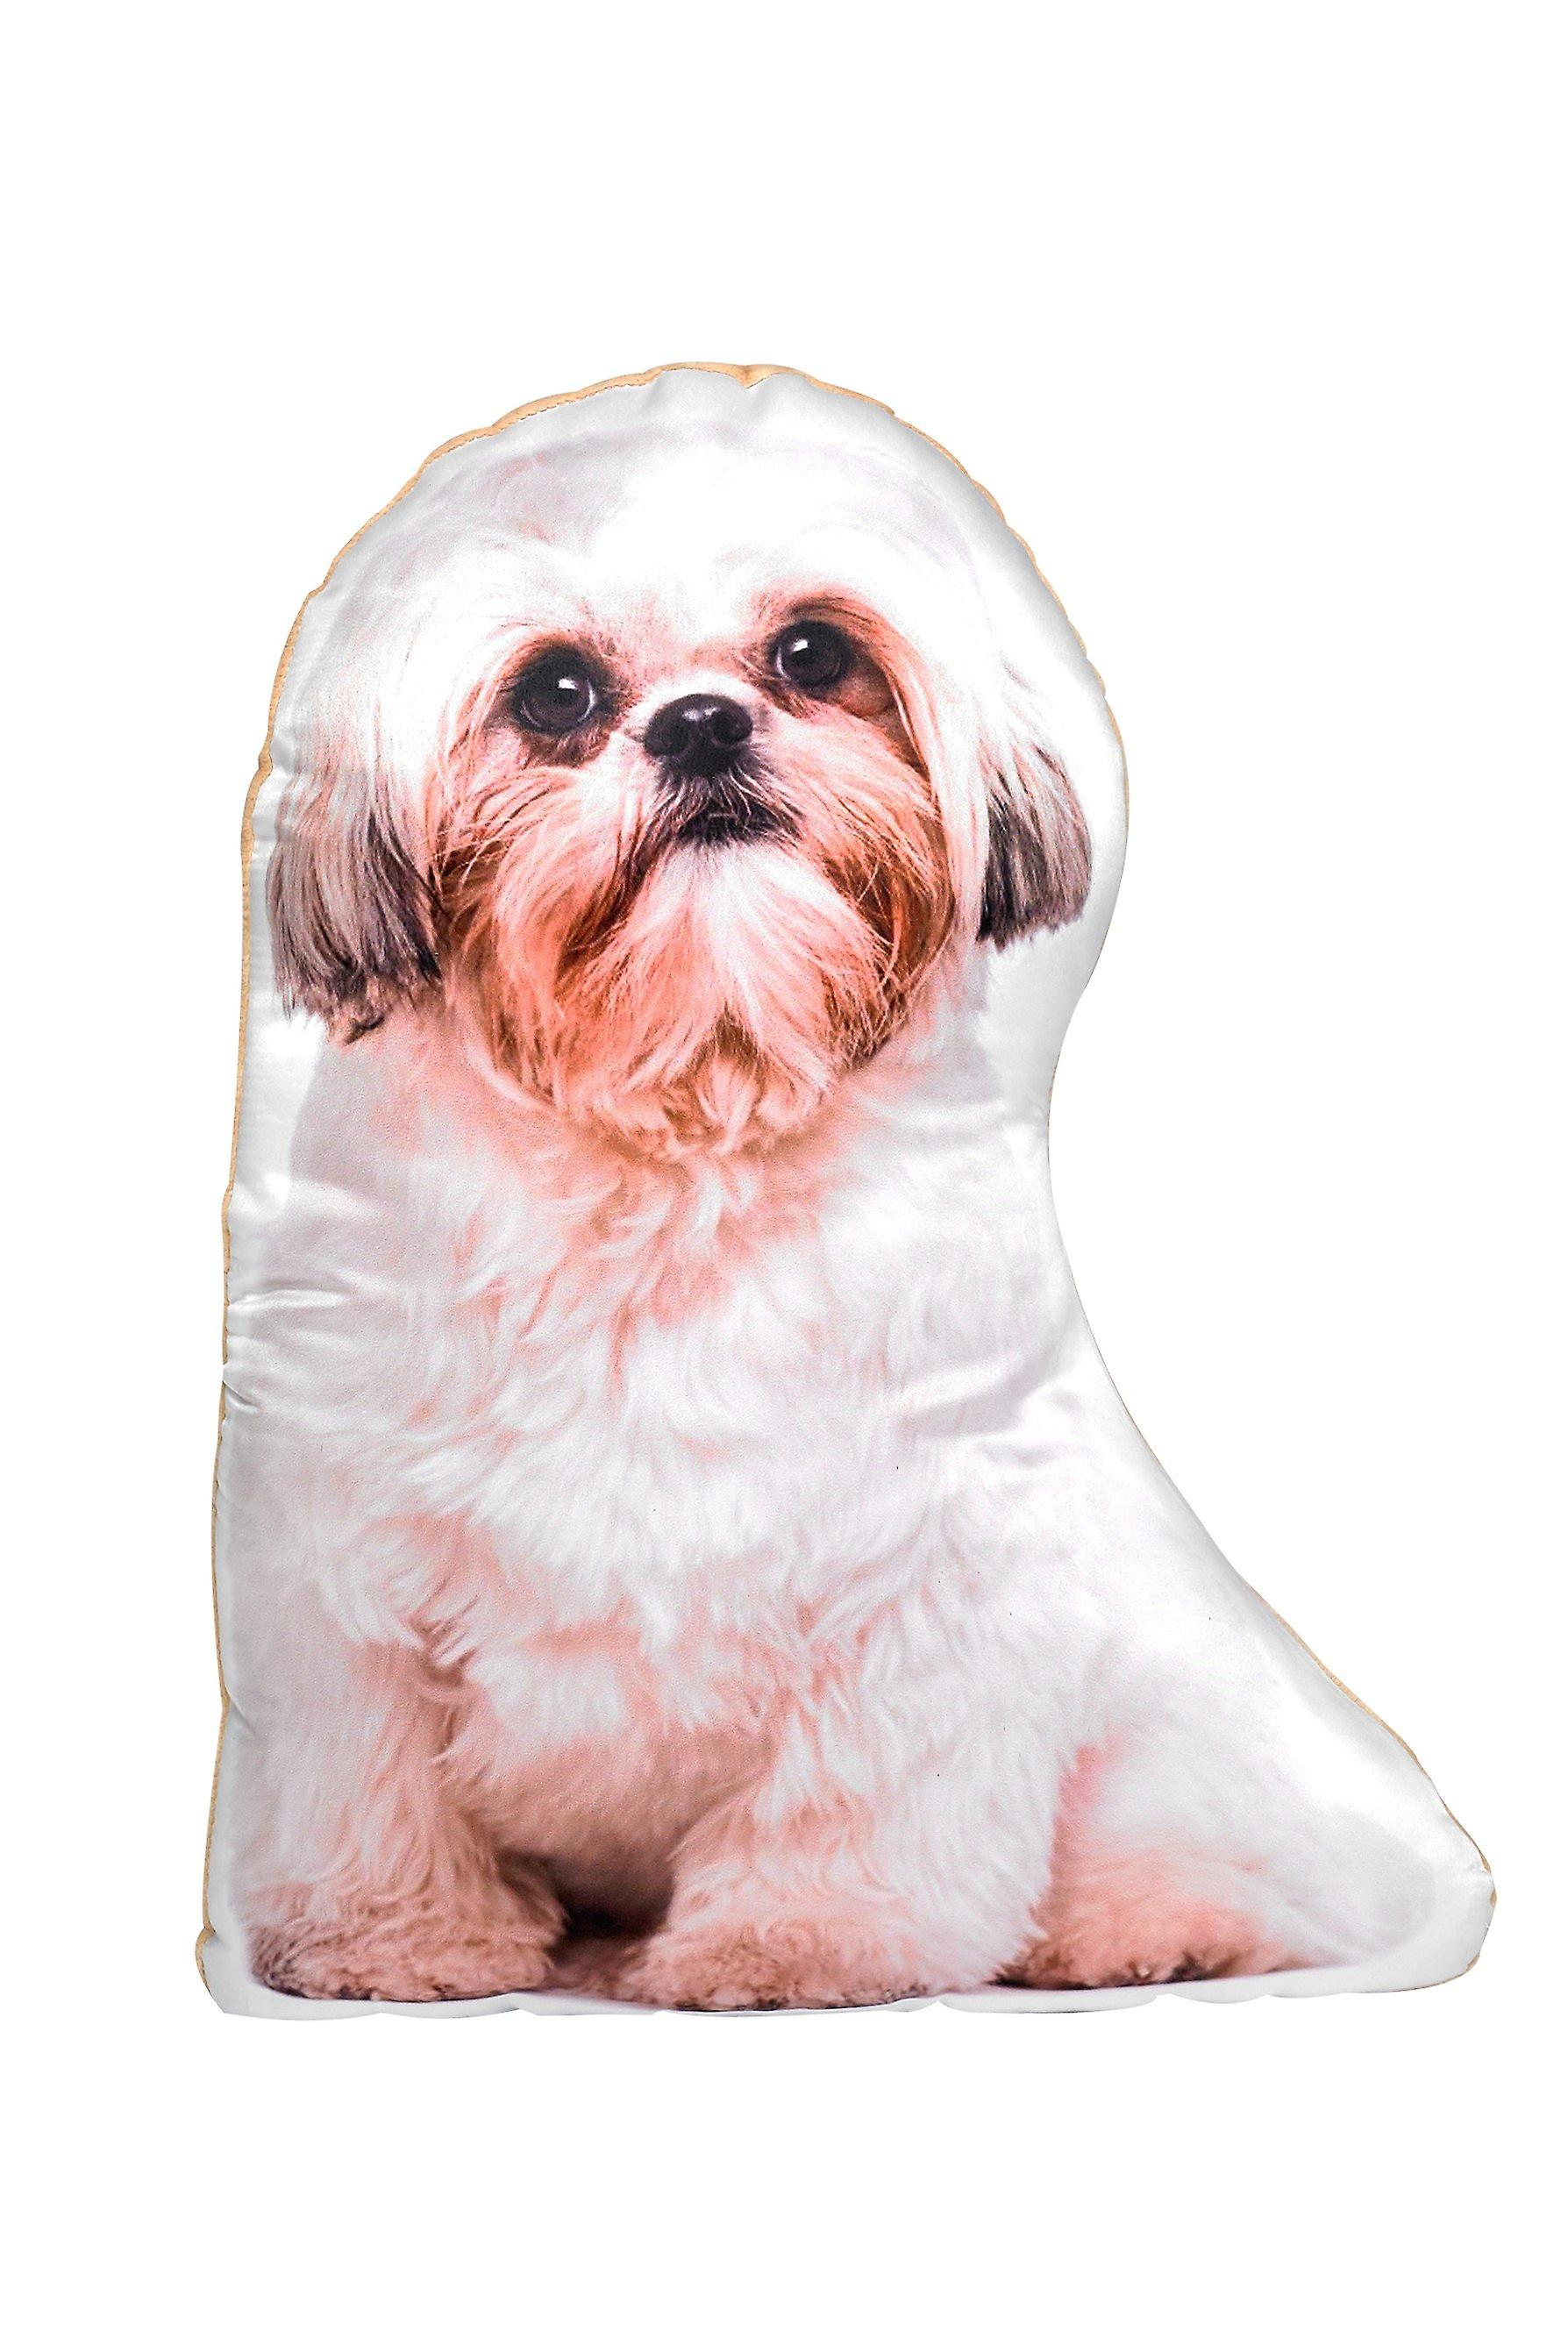 Adorable shih tzu shaped cushion